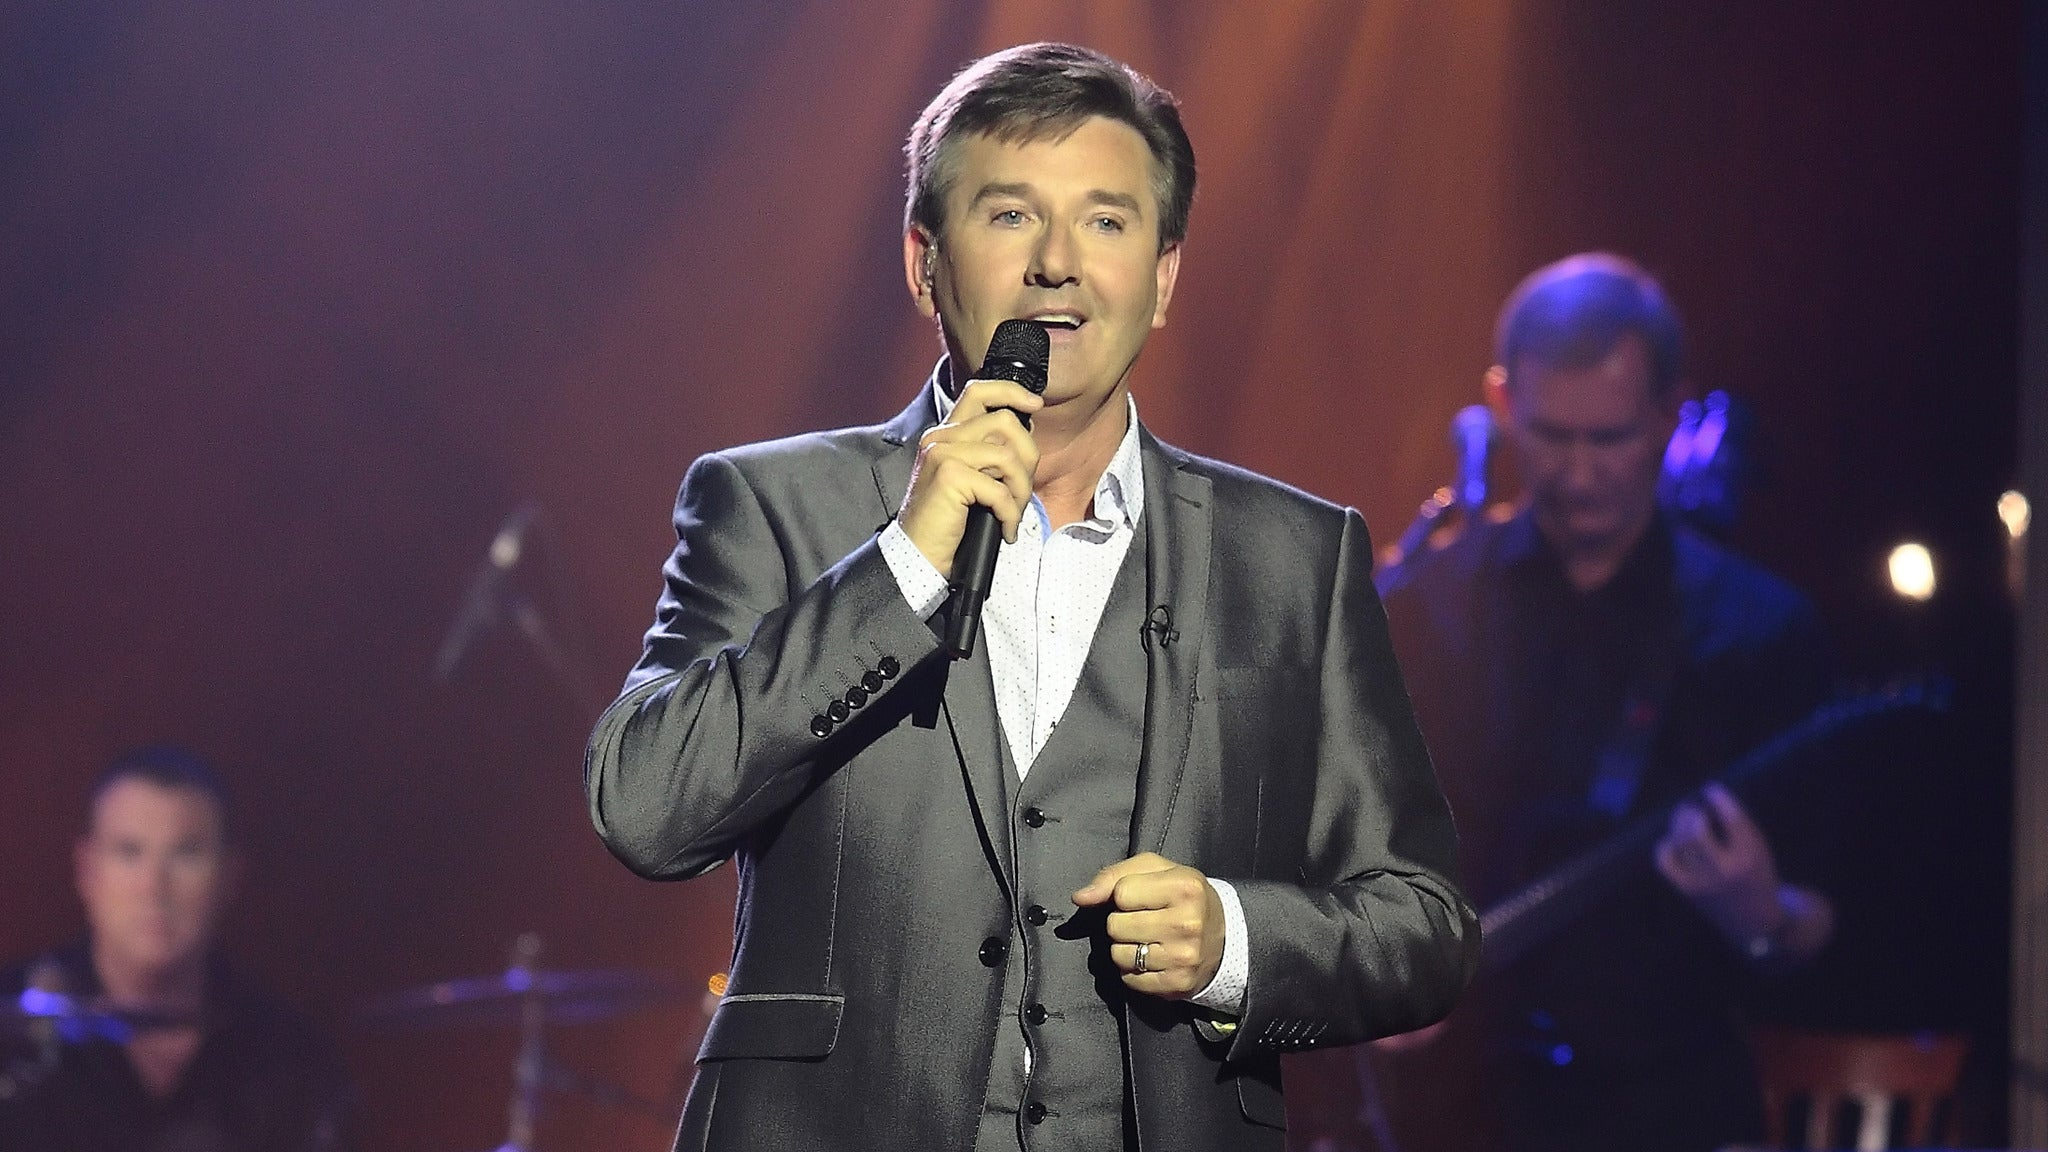 Daniel O'Donnell at The Santander Performing Arts Center